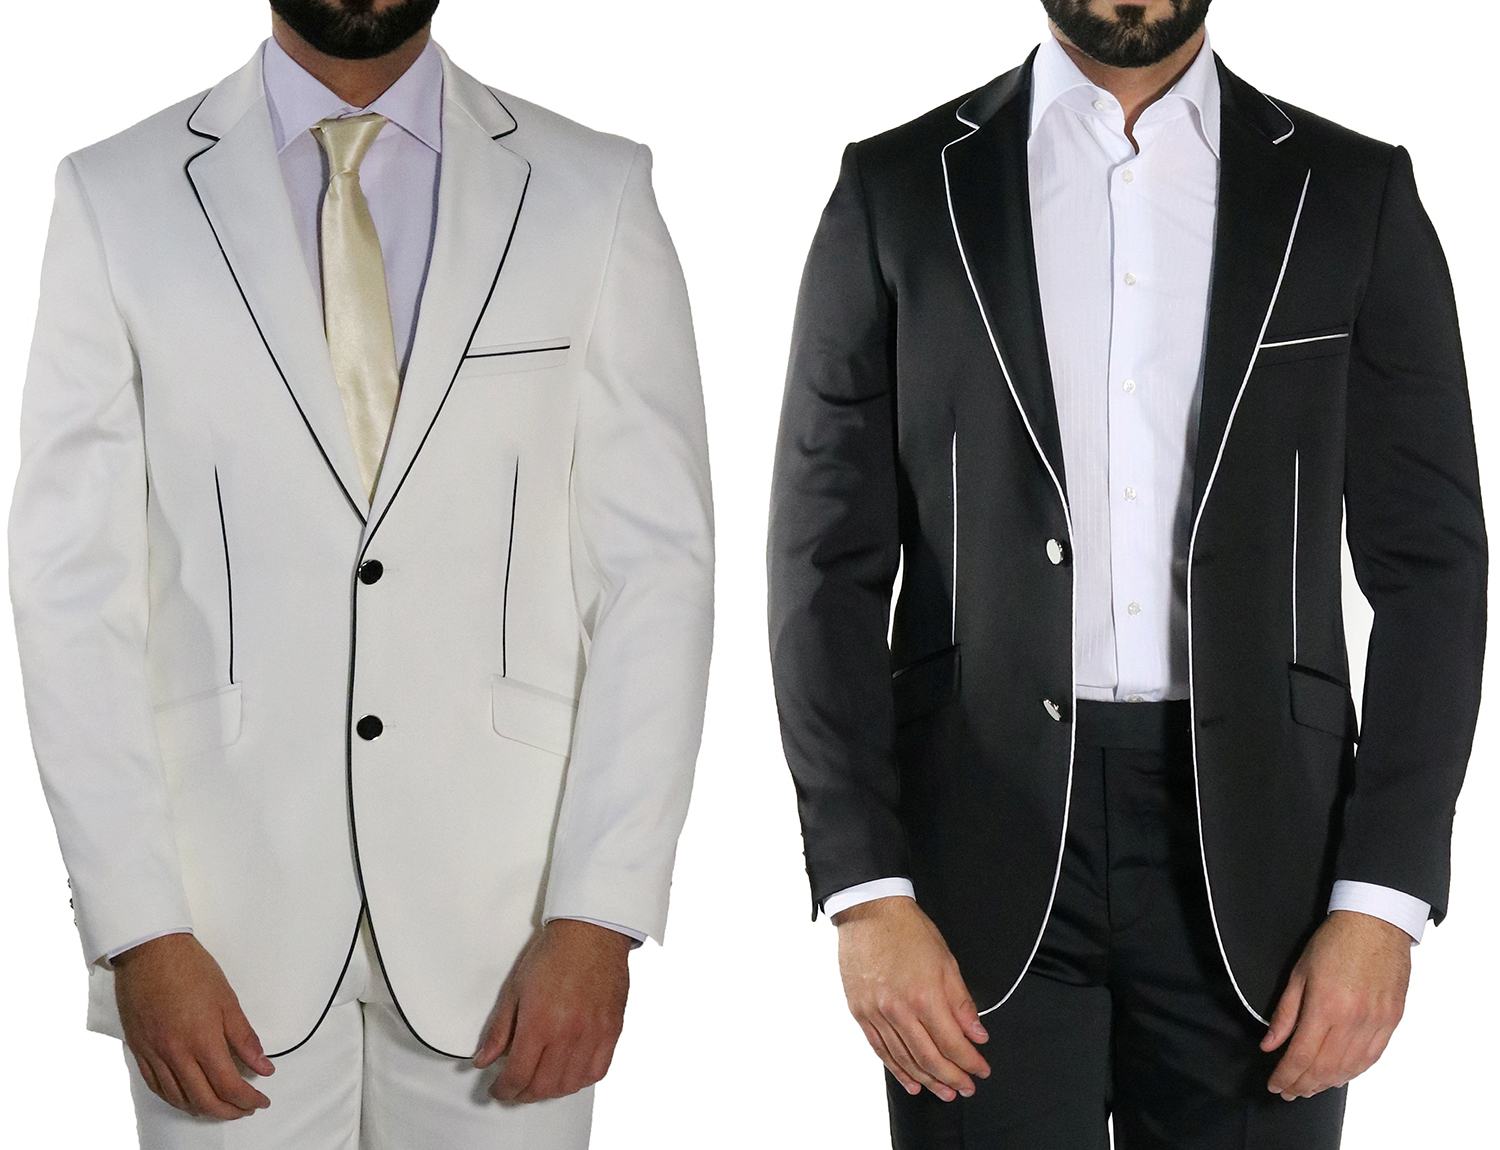 Mariage Costume-Homme-Costume-Marie-Chemise ffbb9835e03